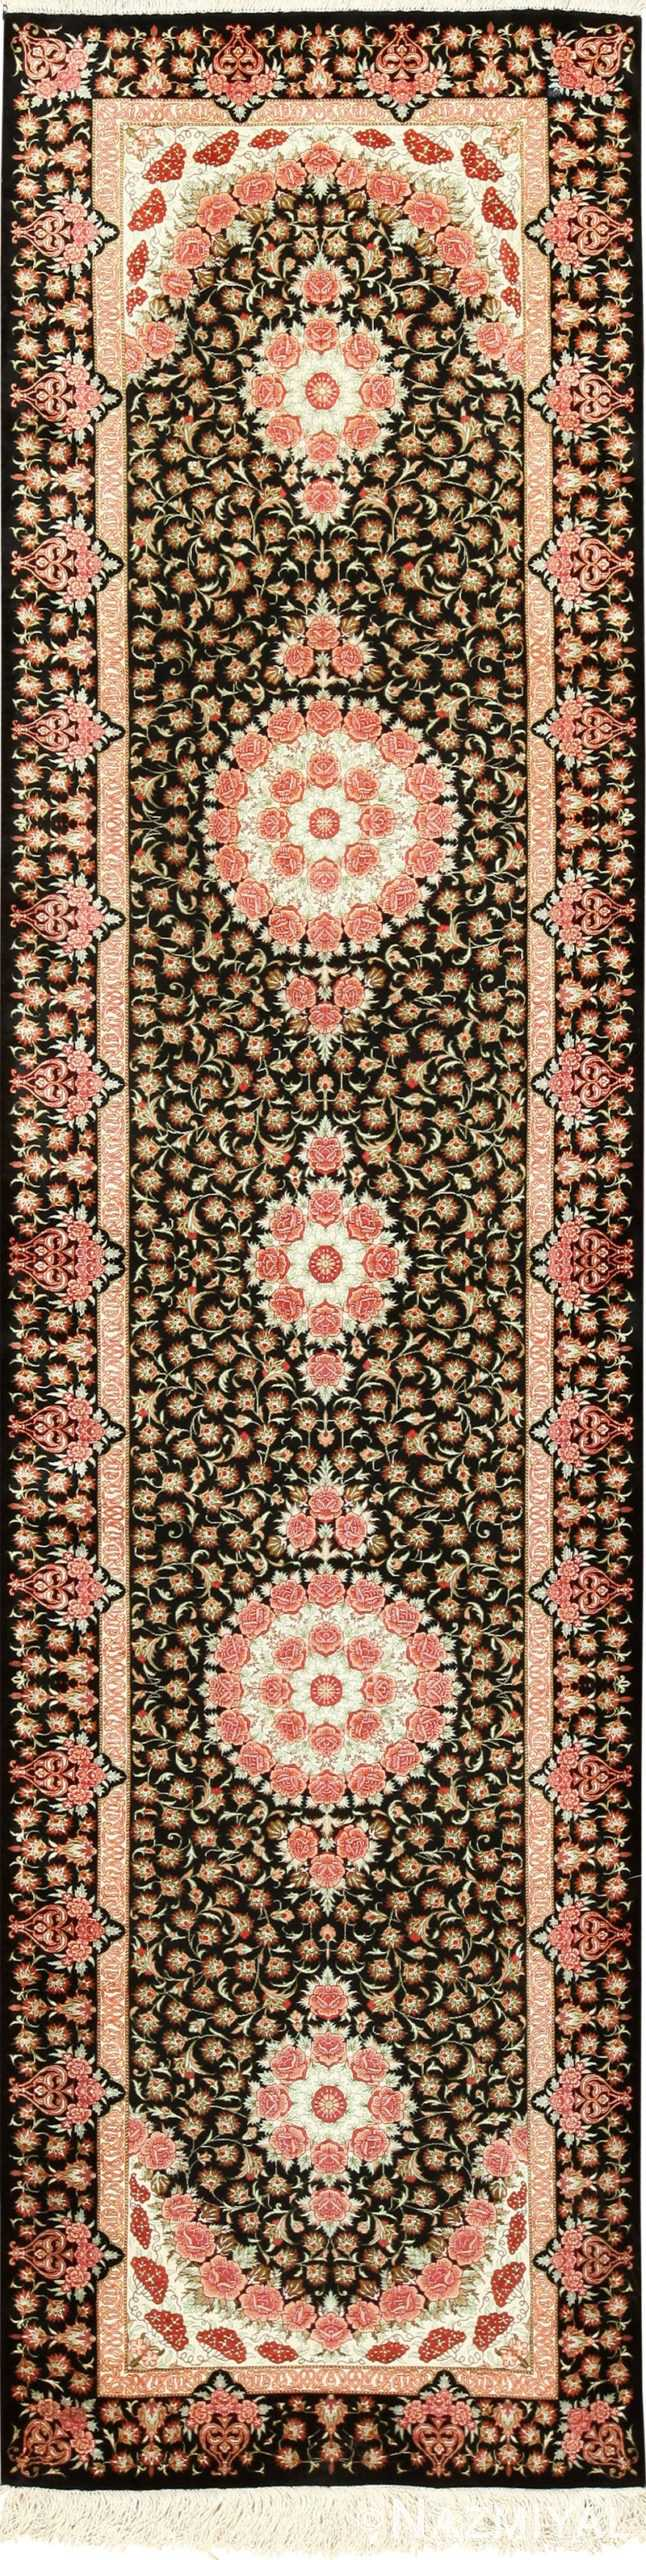 Black Silk Qum Persian Runner Rug 49404 By Nazmiyal Rugs